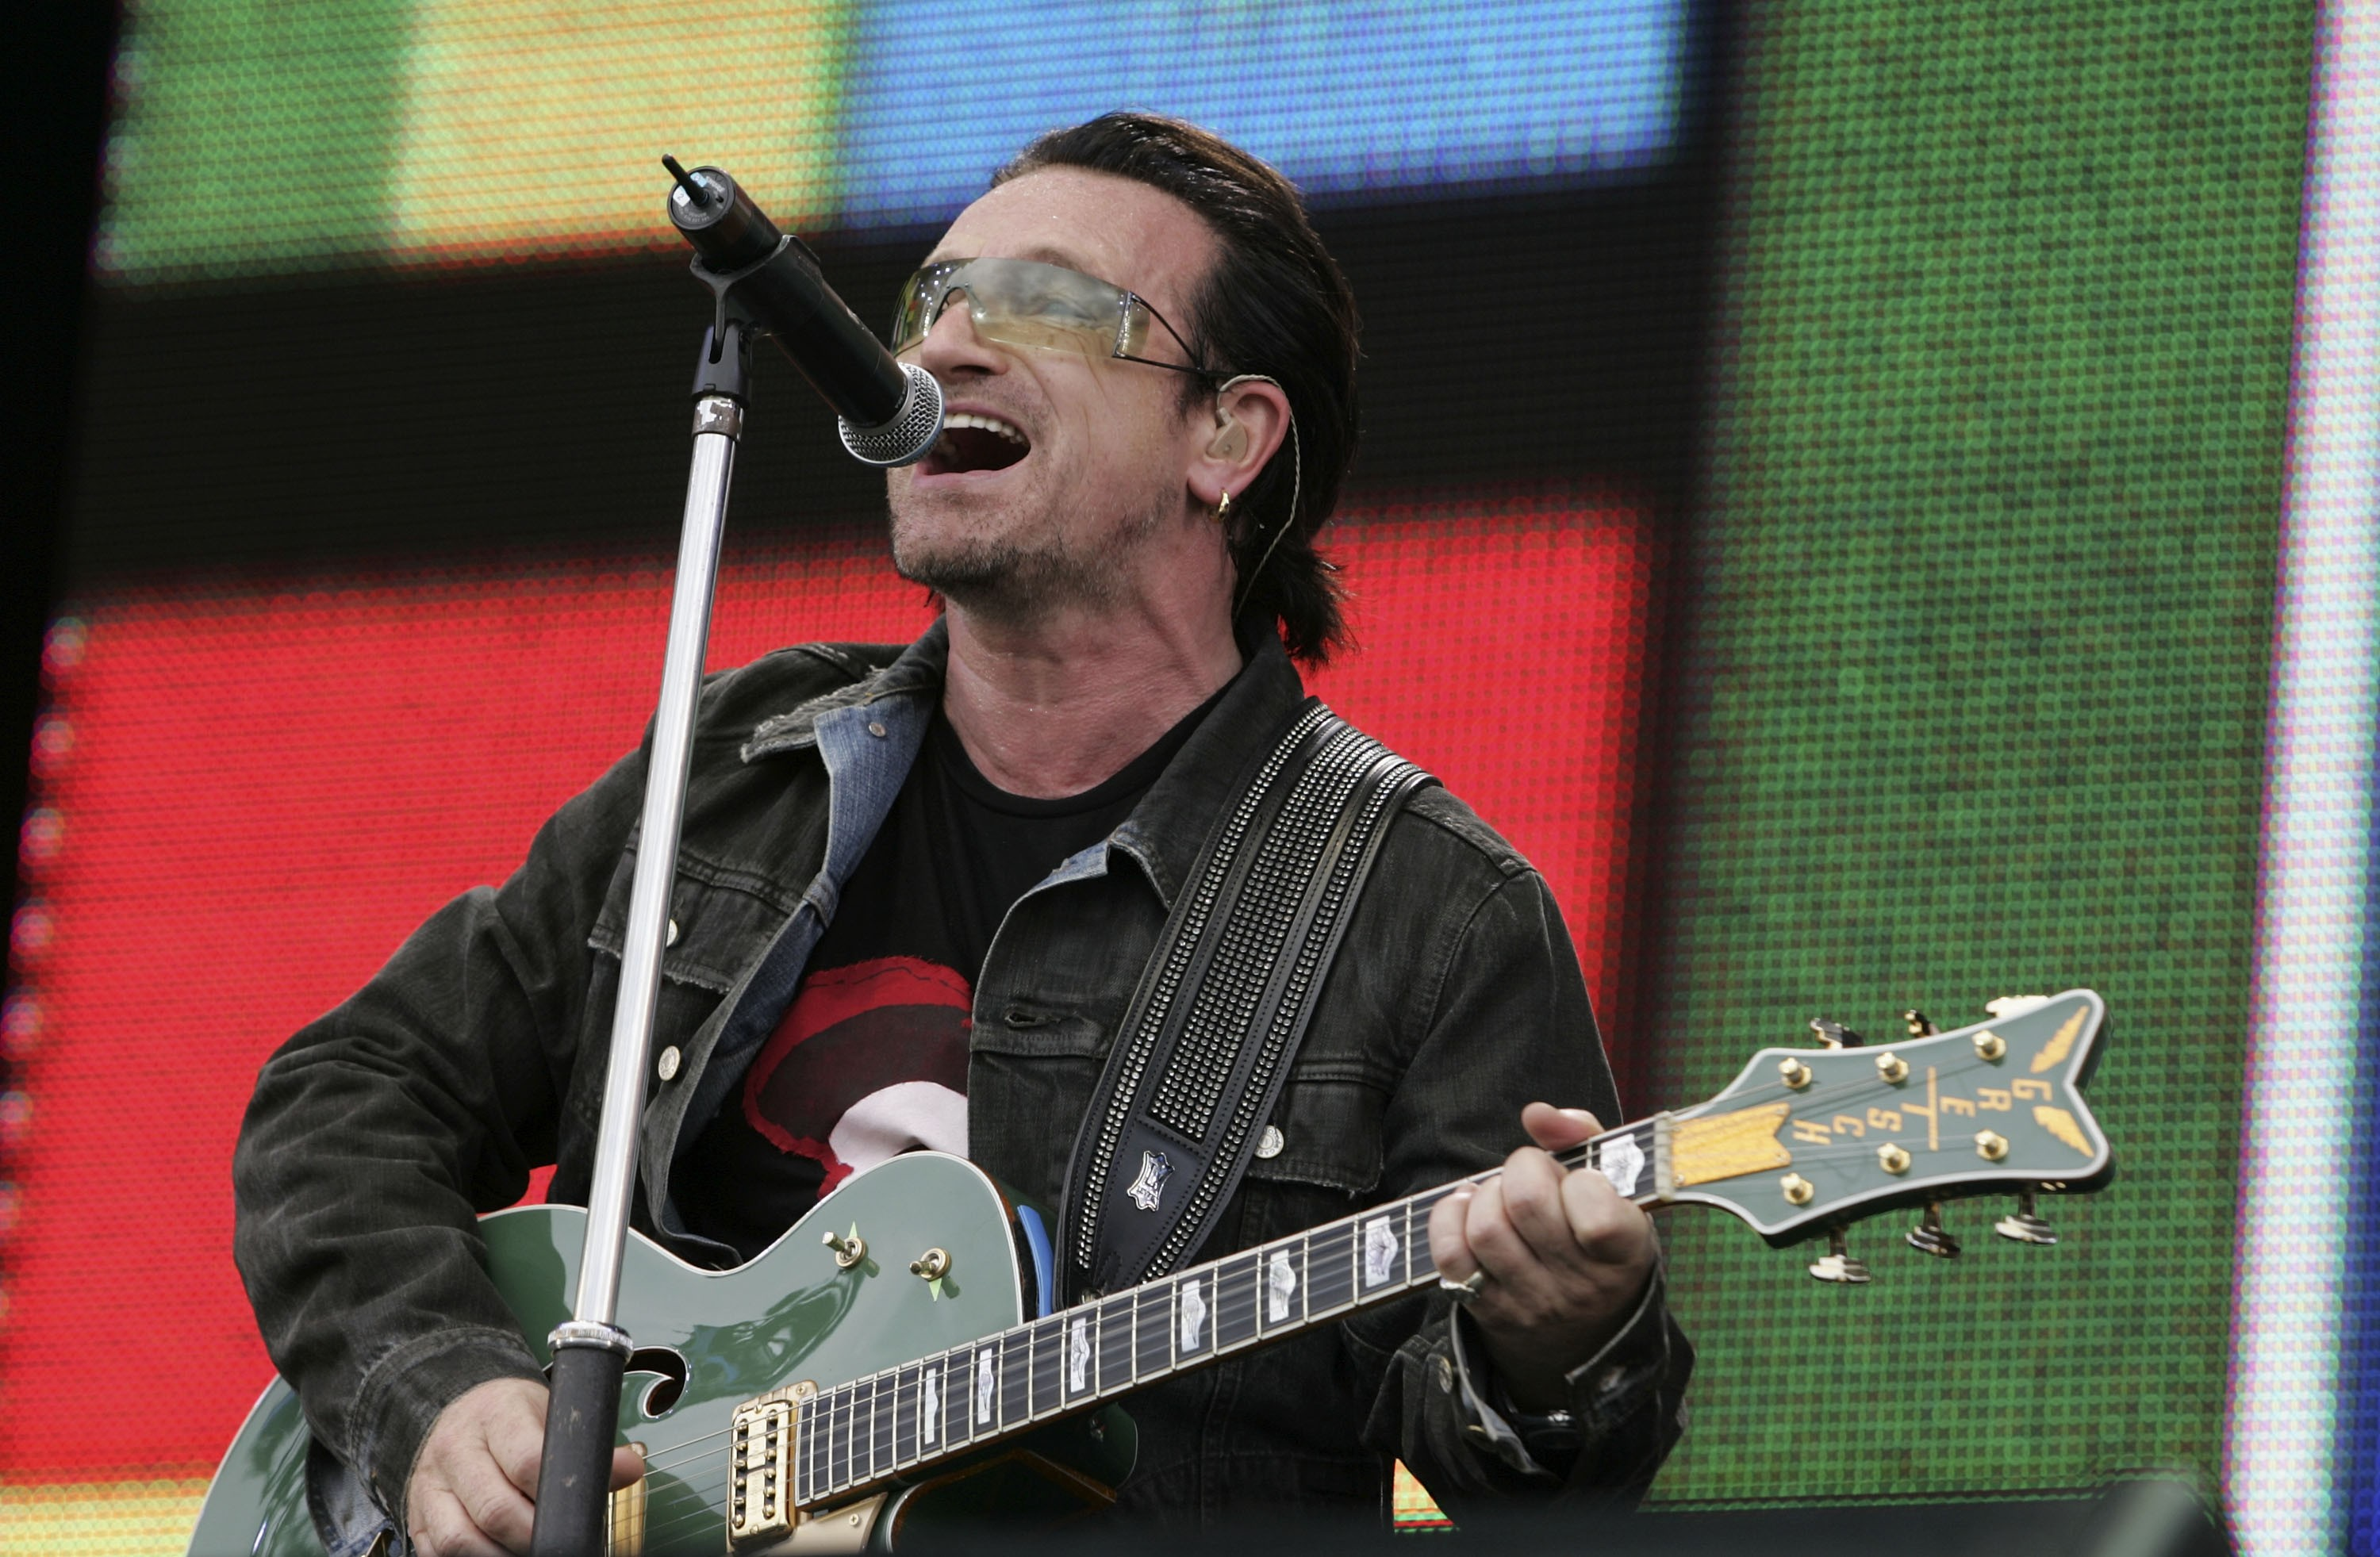 O músico Bono Vox durante um show do U2 (Foto: Getty Images)